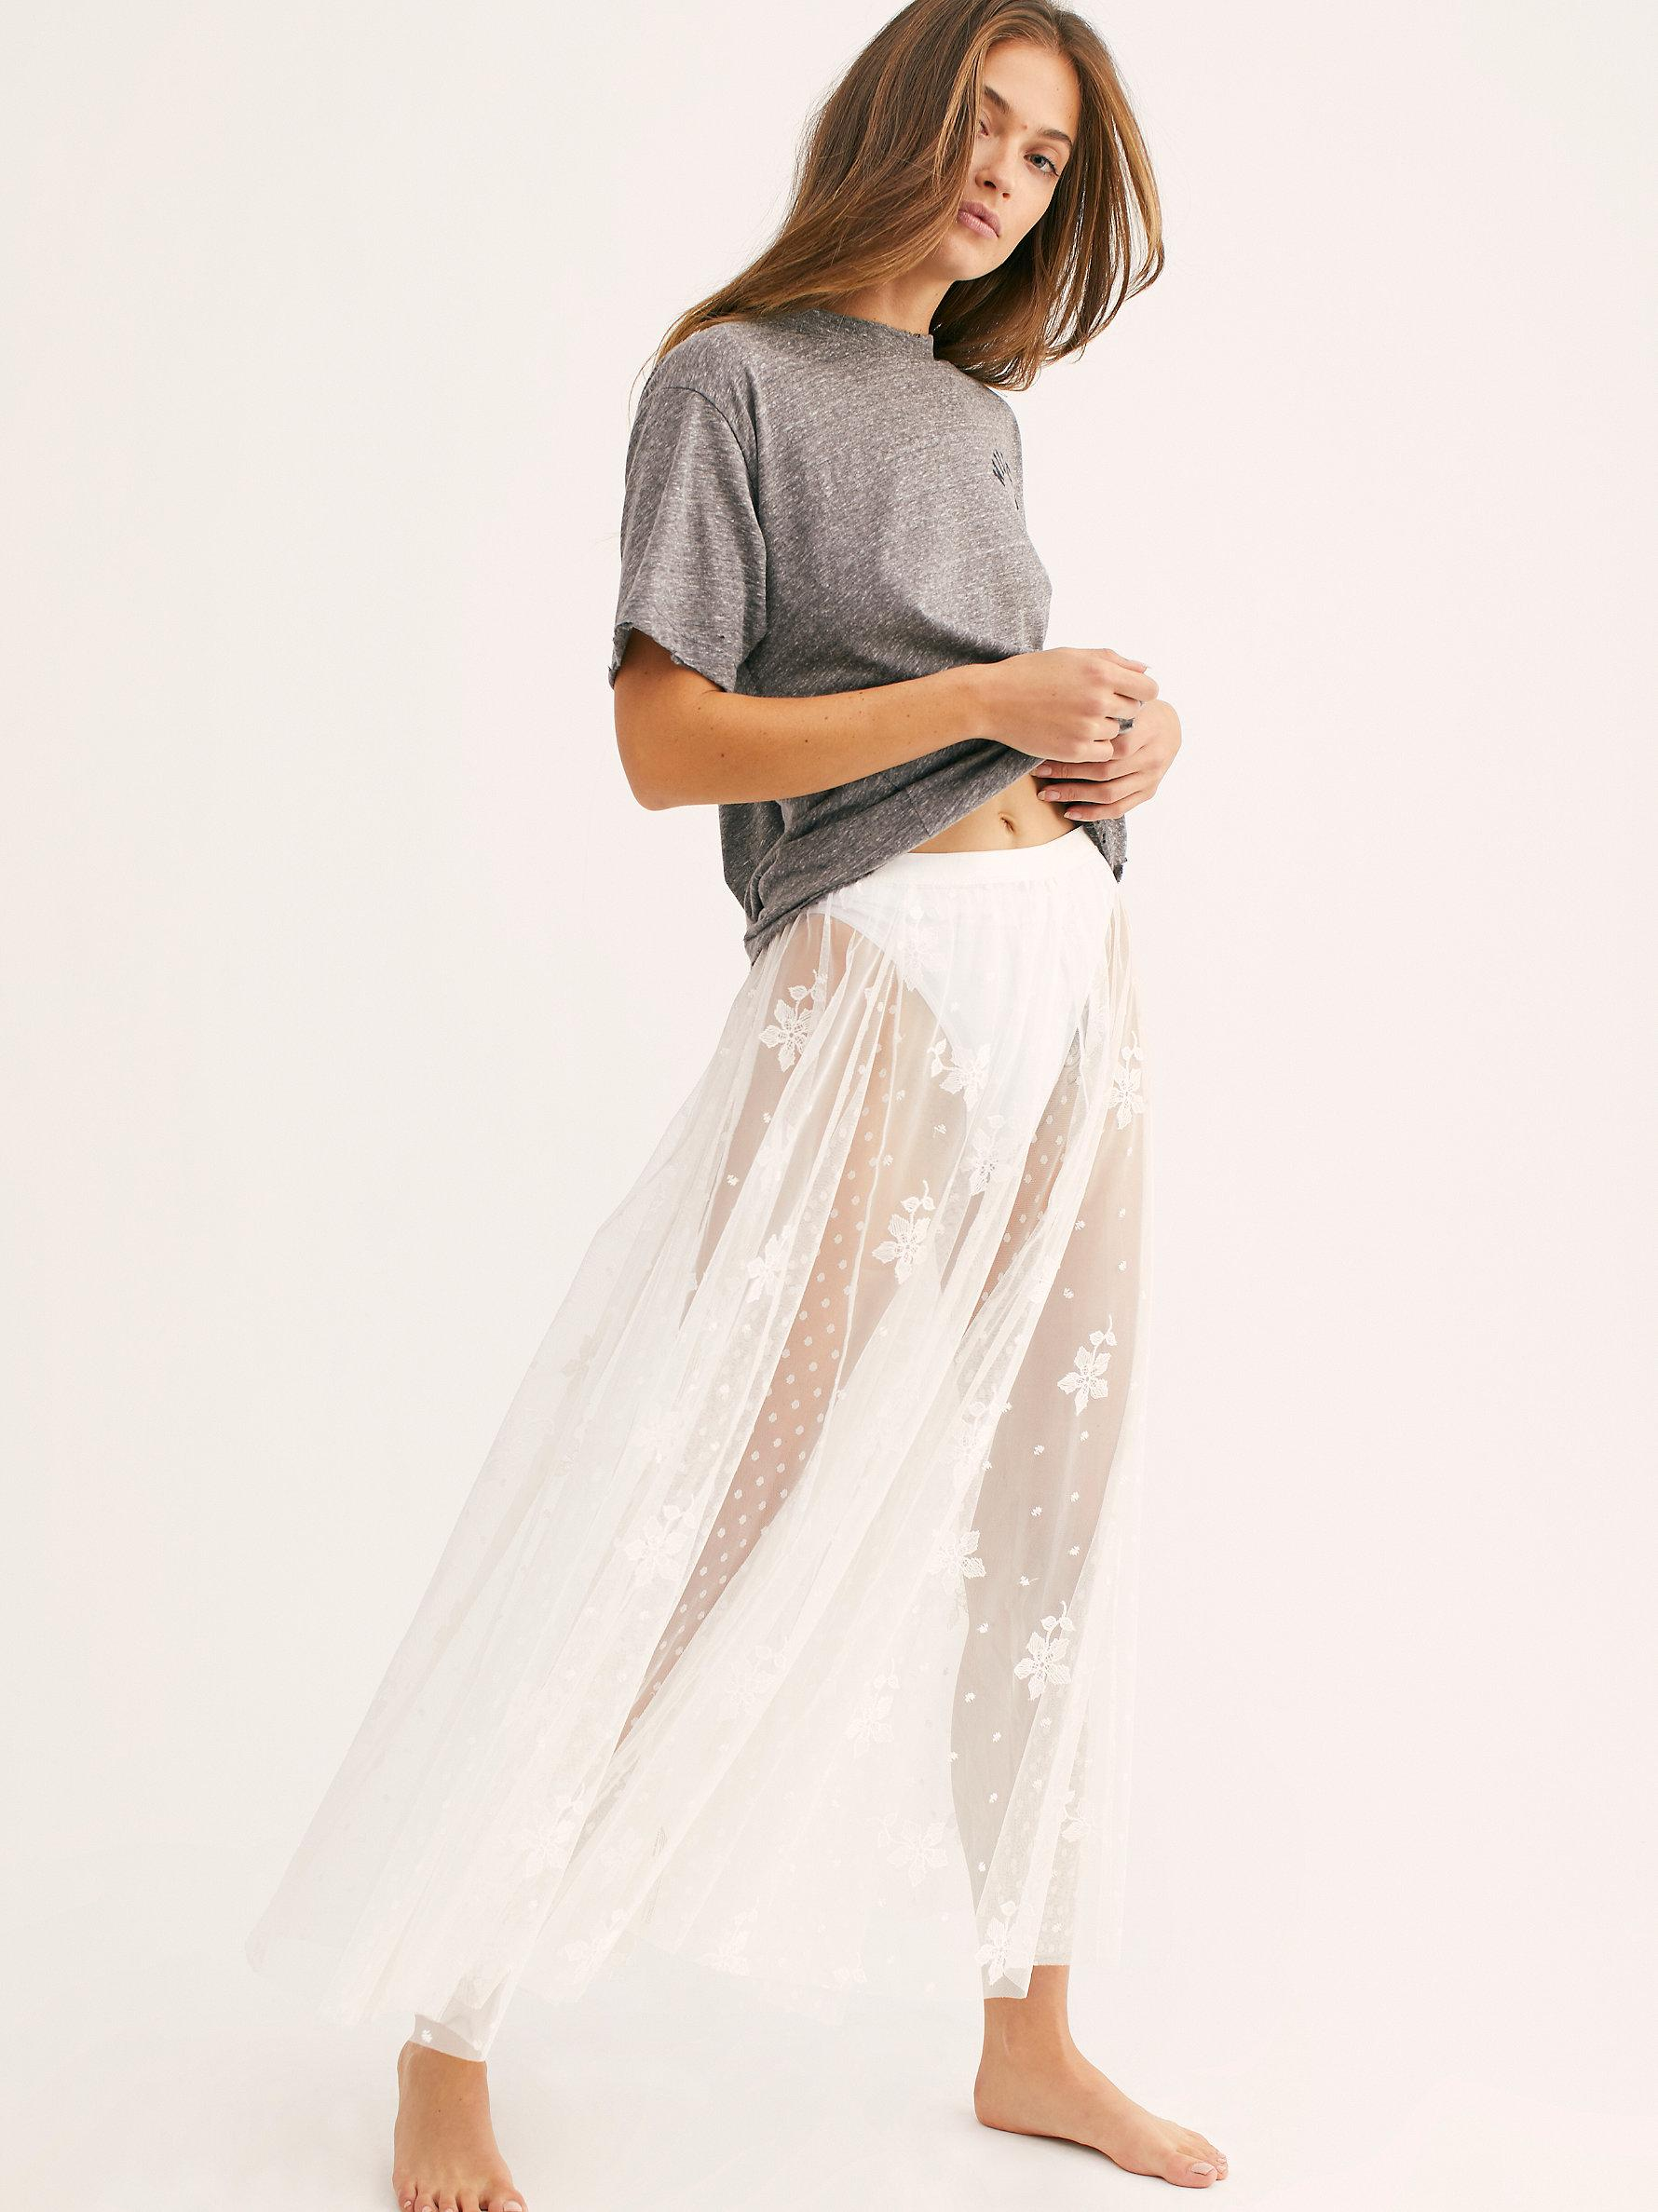 be90f79aec Free People Spring Fever Embroidered Half Slip in White - Lyst